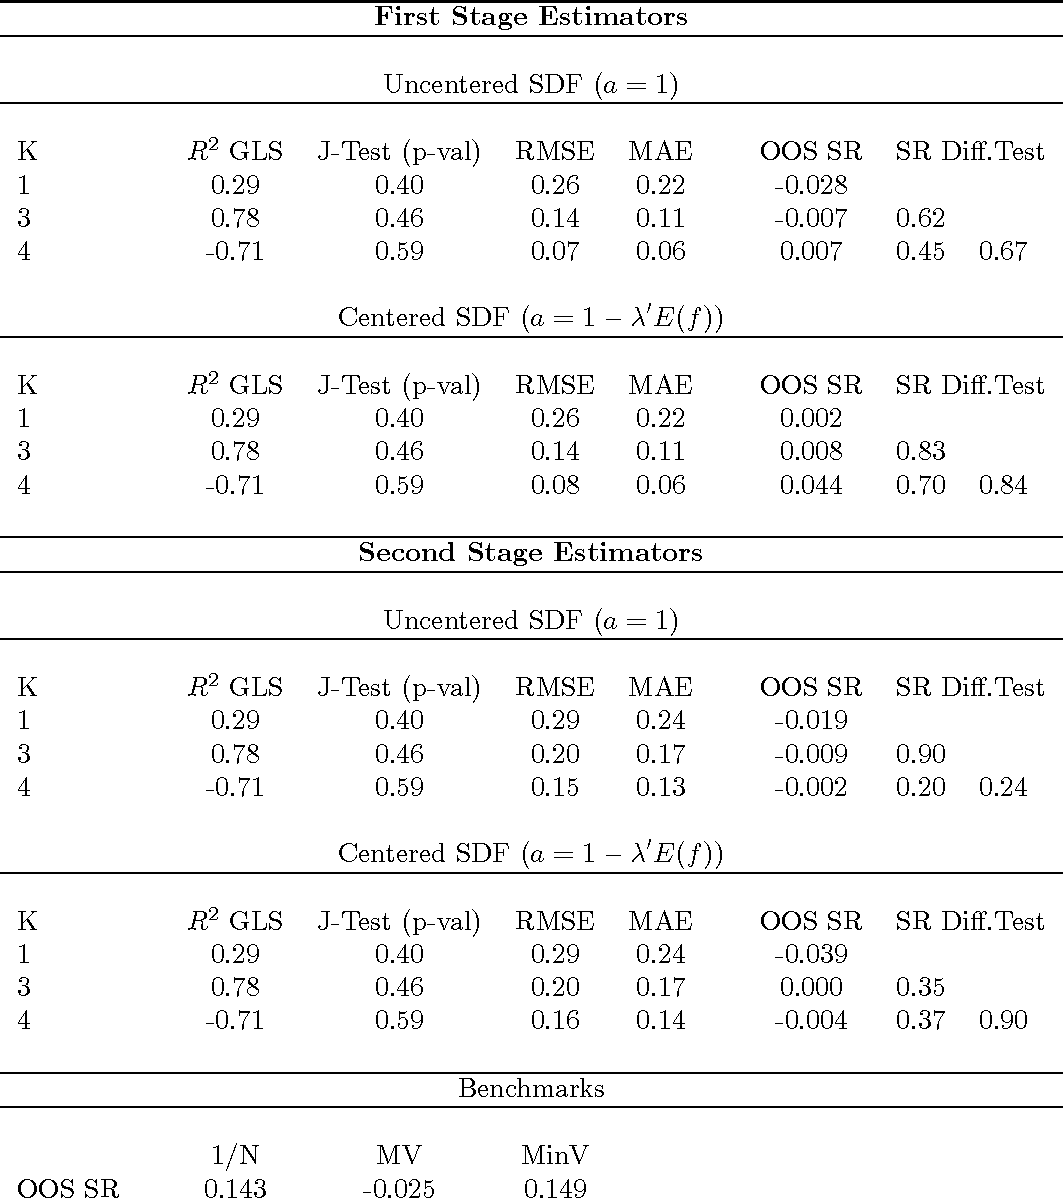 Table 1: Linear Asset Pricing Model Estimation and MV Portfolio Performance